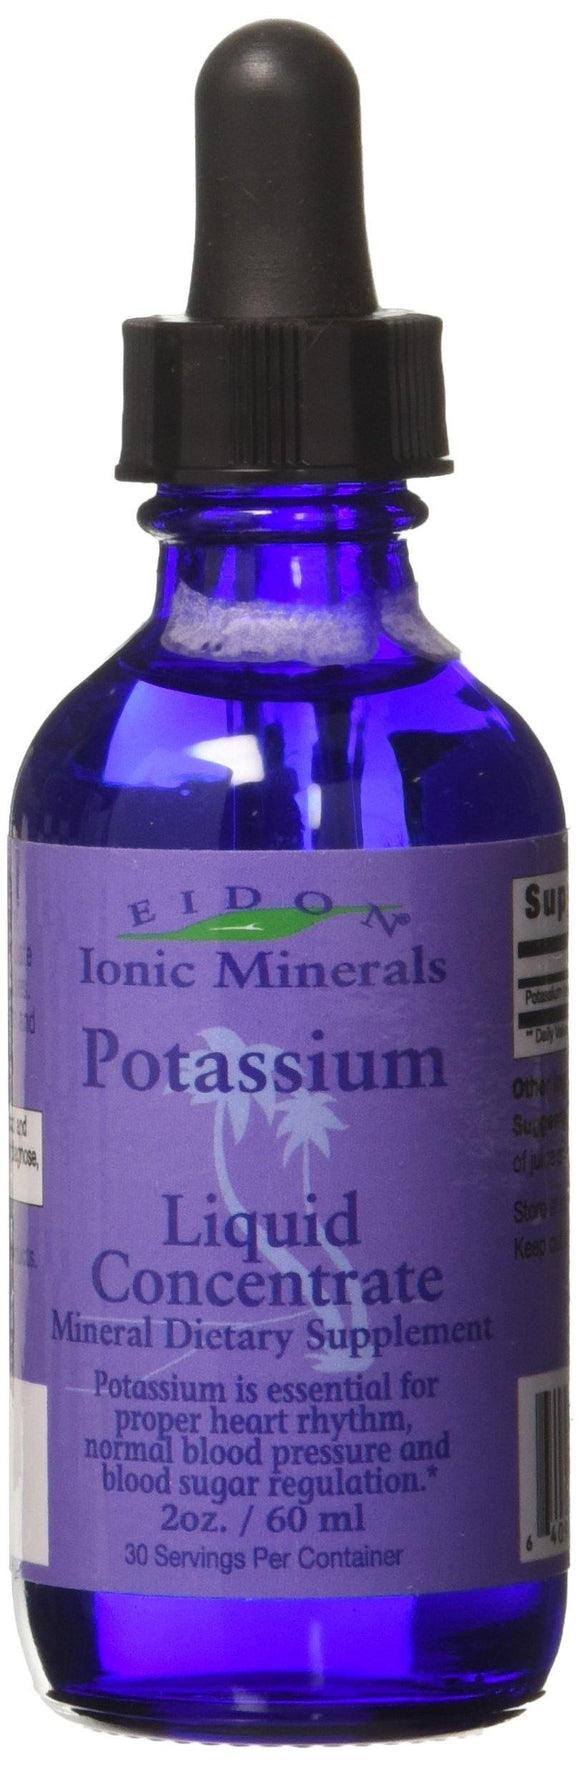 Eidon Potassium Mineral Supplement, 2 Ounce - Vitamins Emporium